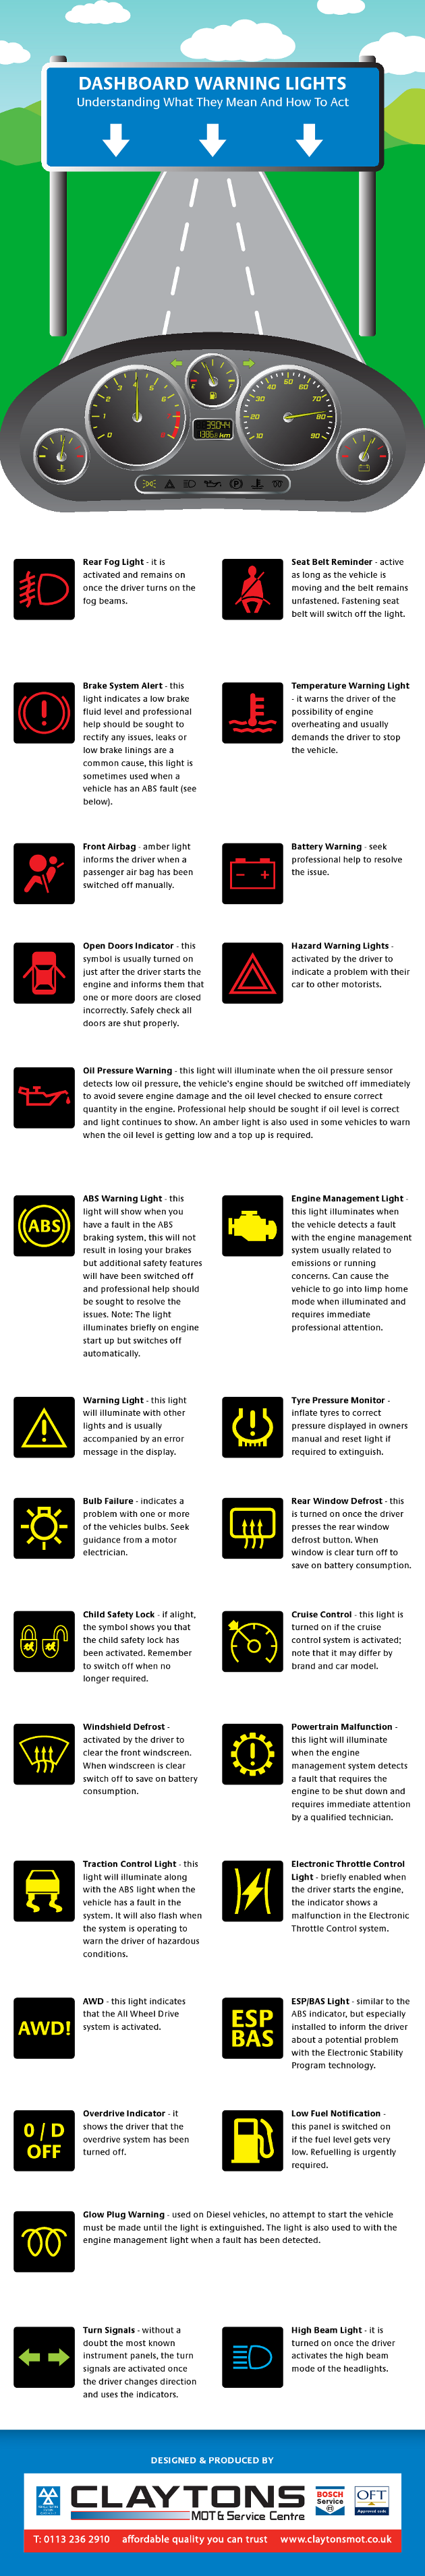 Dashboard-warning-light-infographic